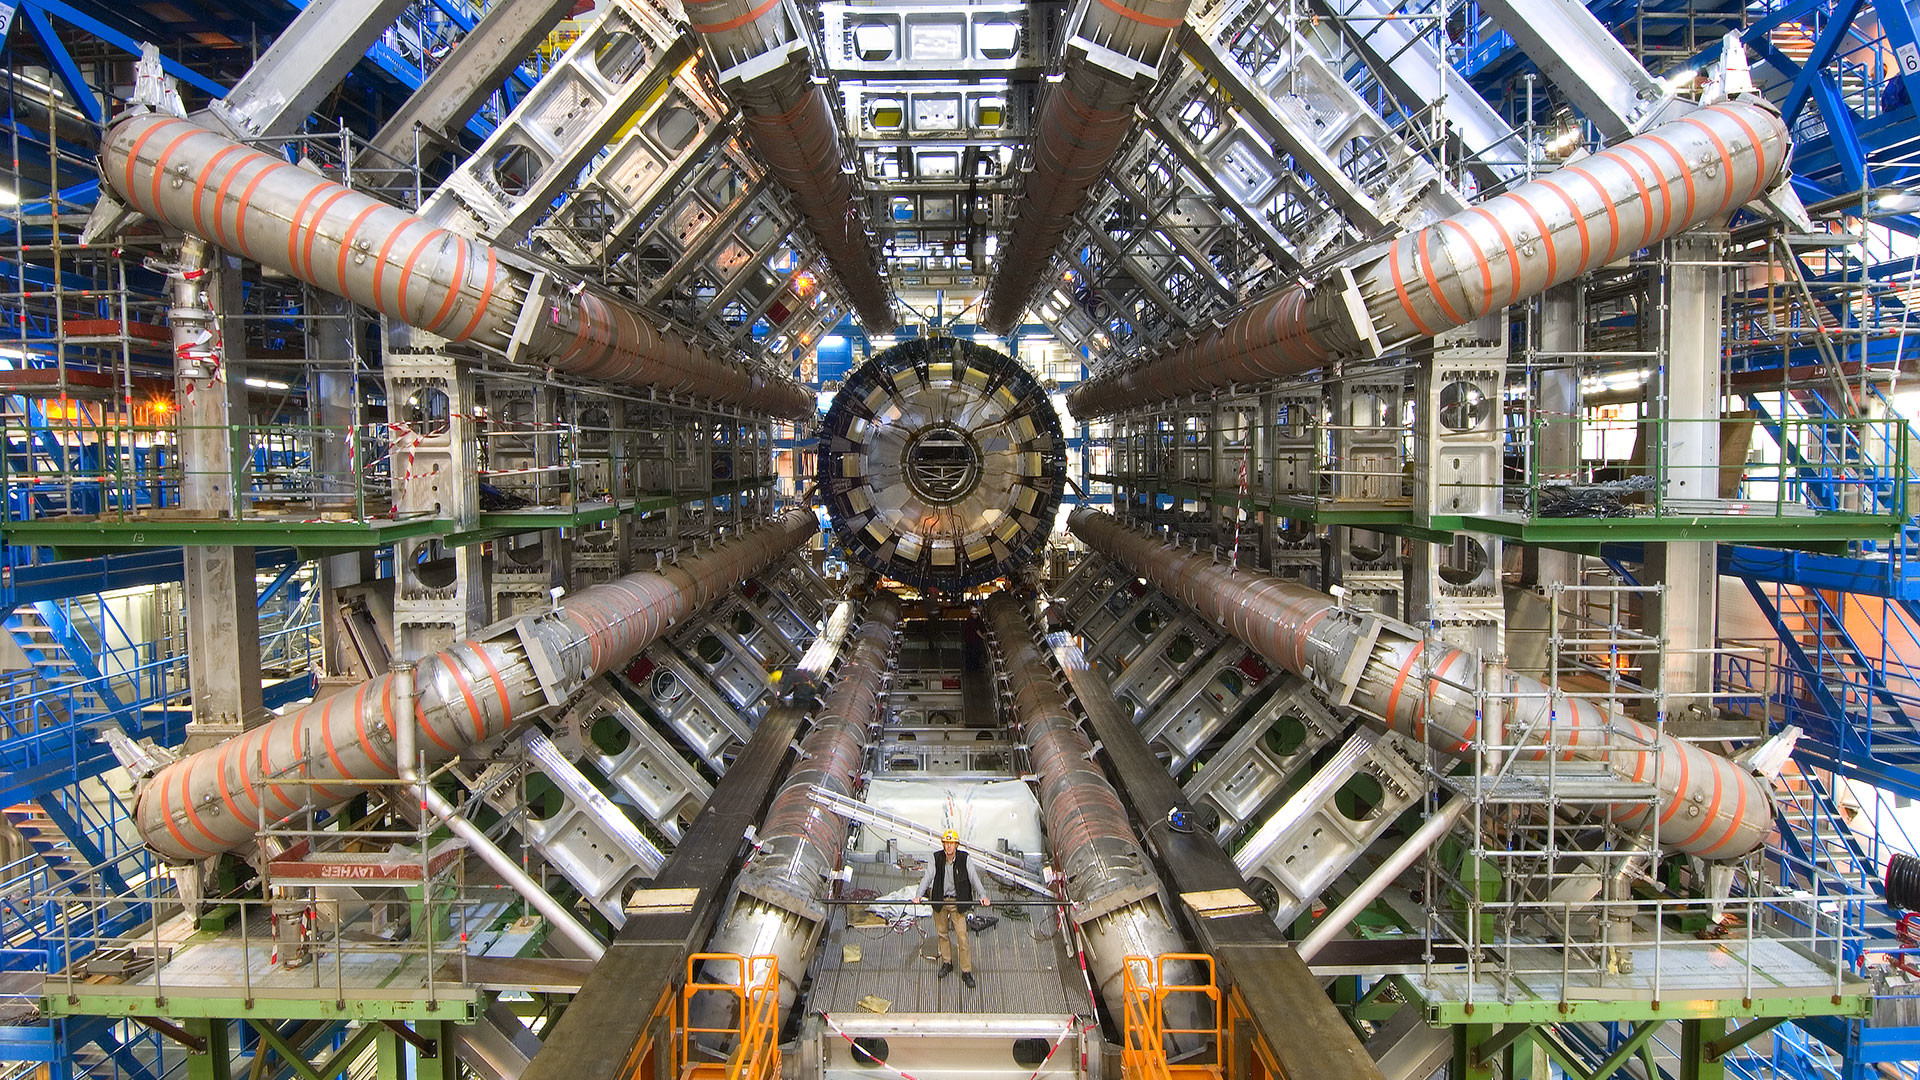 BU Physicists Investigate Proton Collisions at Large Hadron Collider (LHC)  at CERN, Searching for New Physics | Research